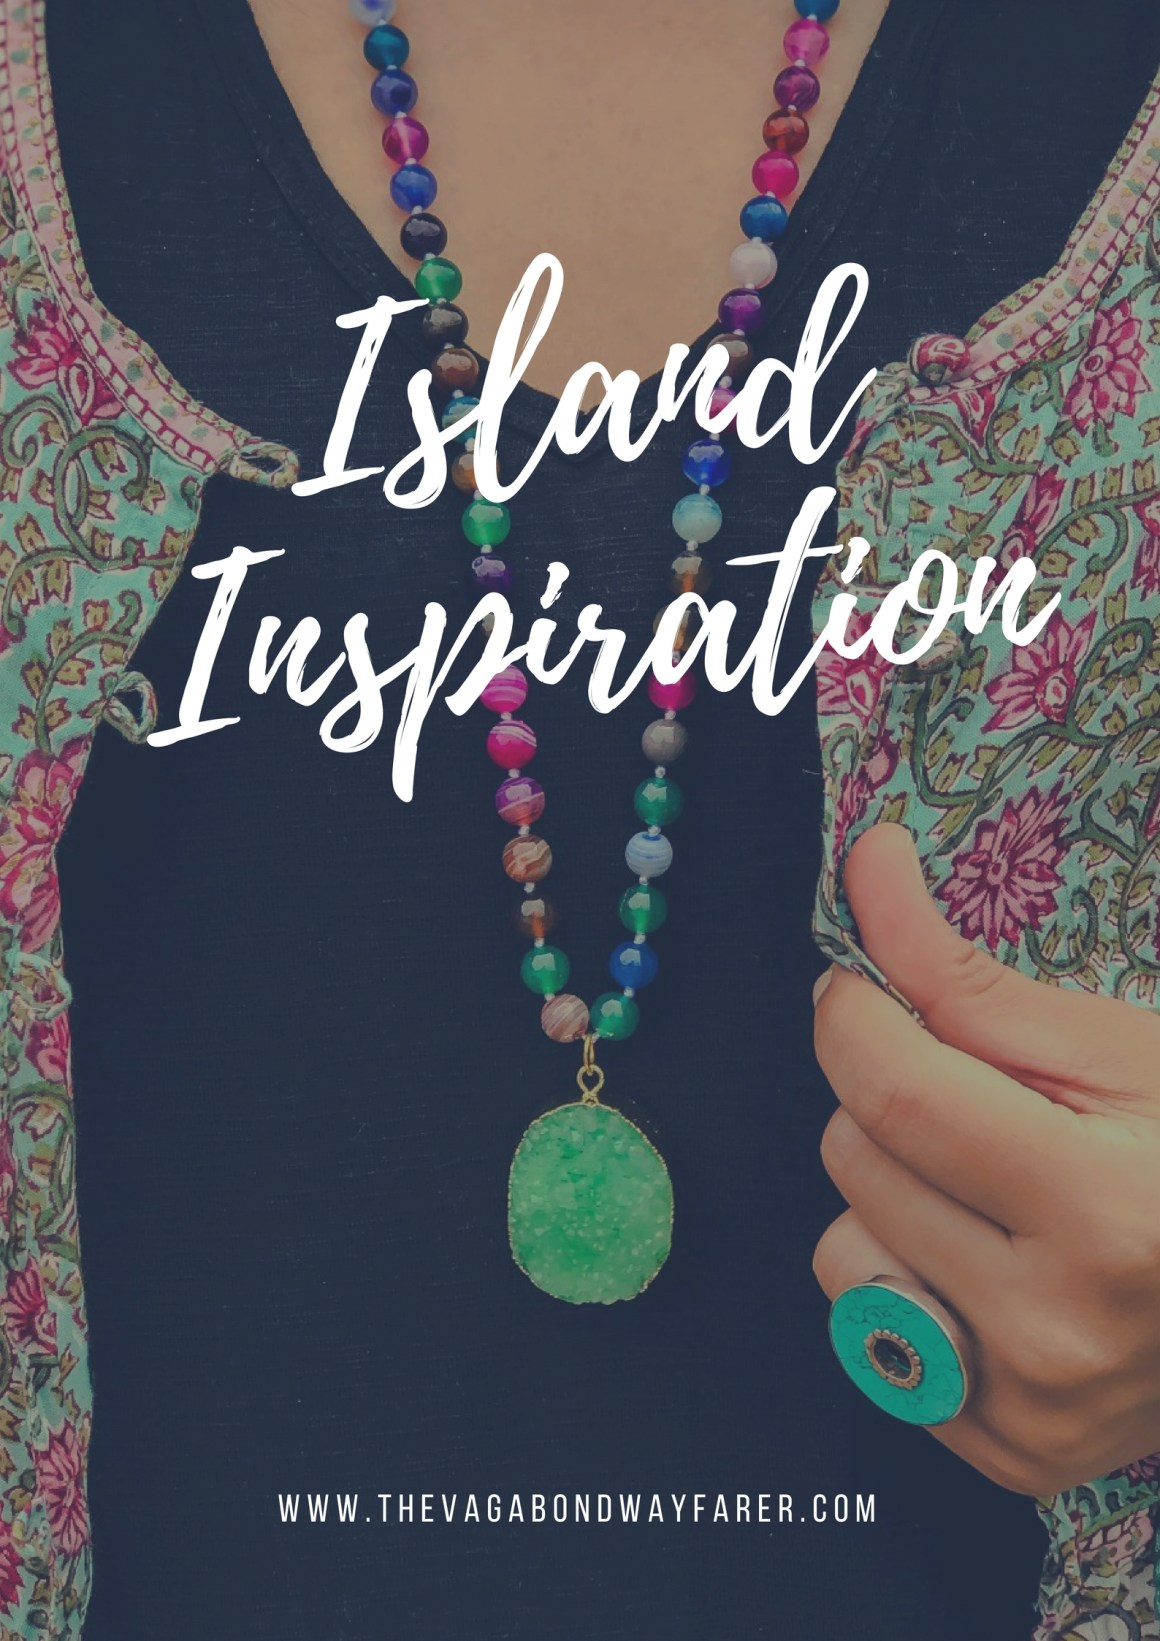 Island Inspiration - The Vagabond Wayfarer